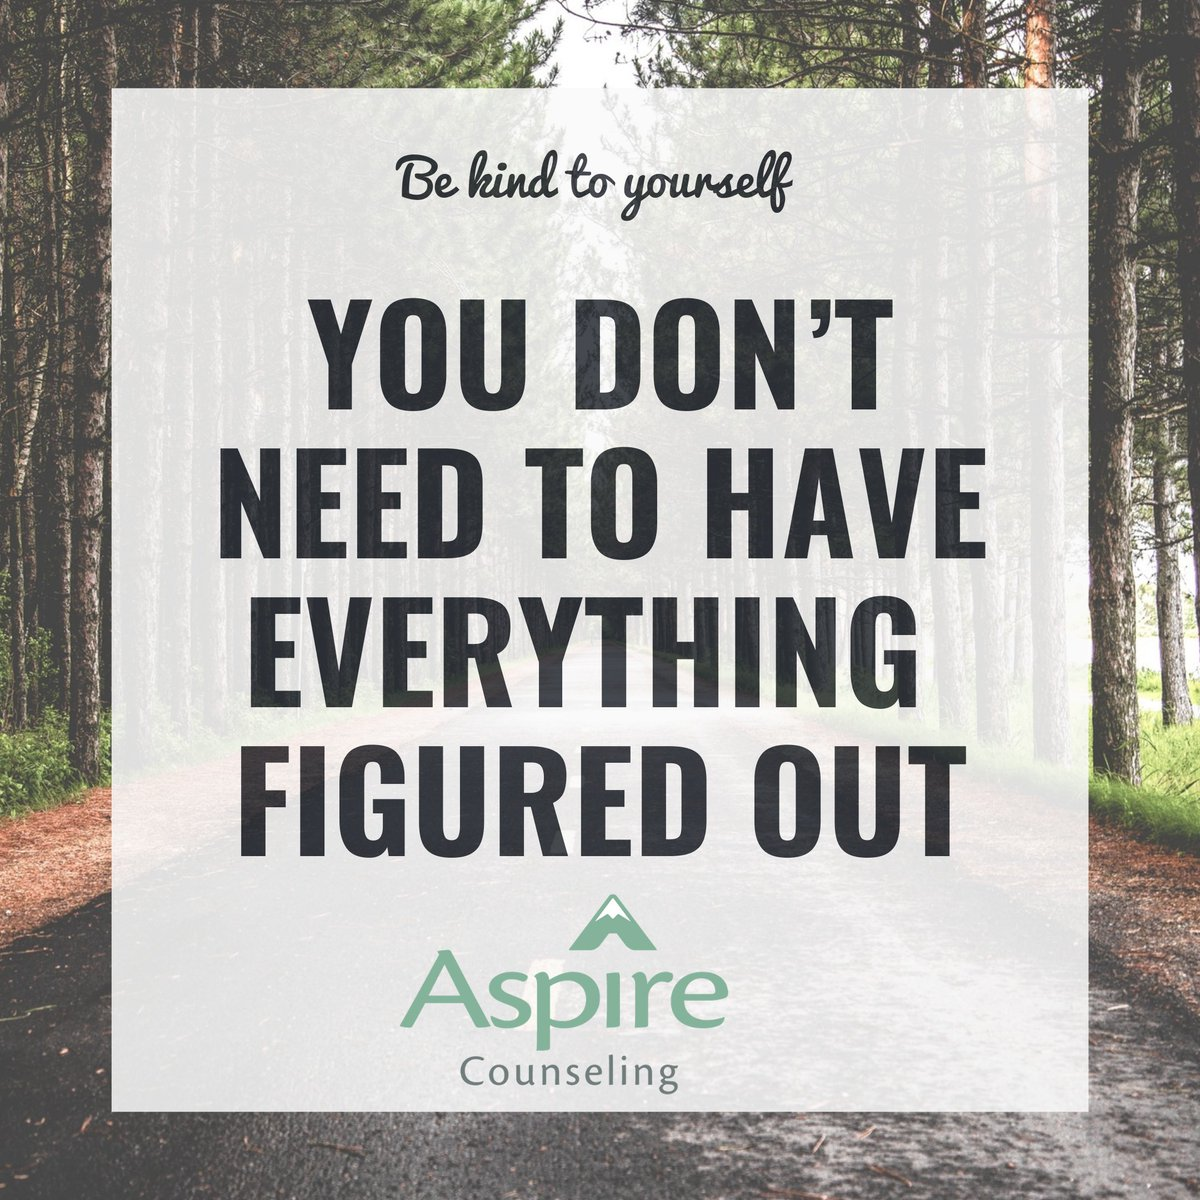 This #tiptuesday we wanted to remind you that you don't have to have everything figured out! Life is unpredictable, so be kind to yourself! #mentalhealthtip #aspirecounselingmo #selflove #bekindtoyourmind #youvegotthis https://t.co/NnoDxCGQrf